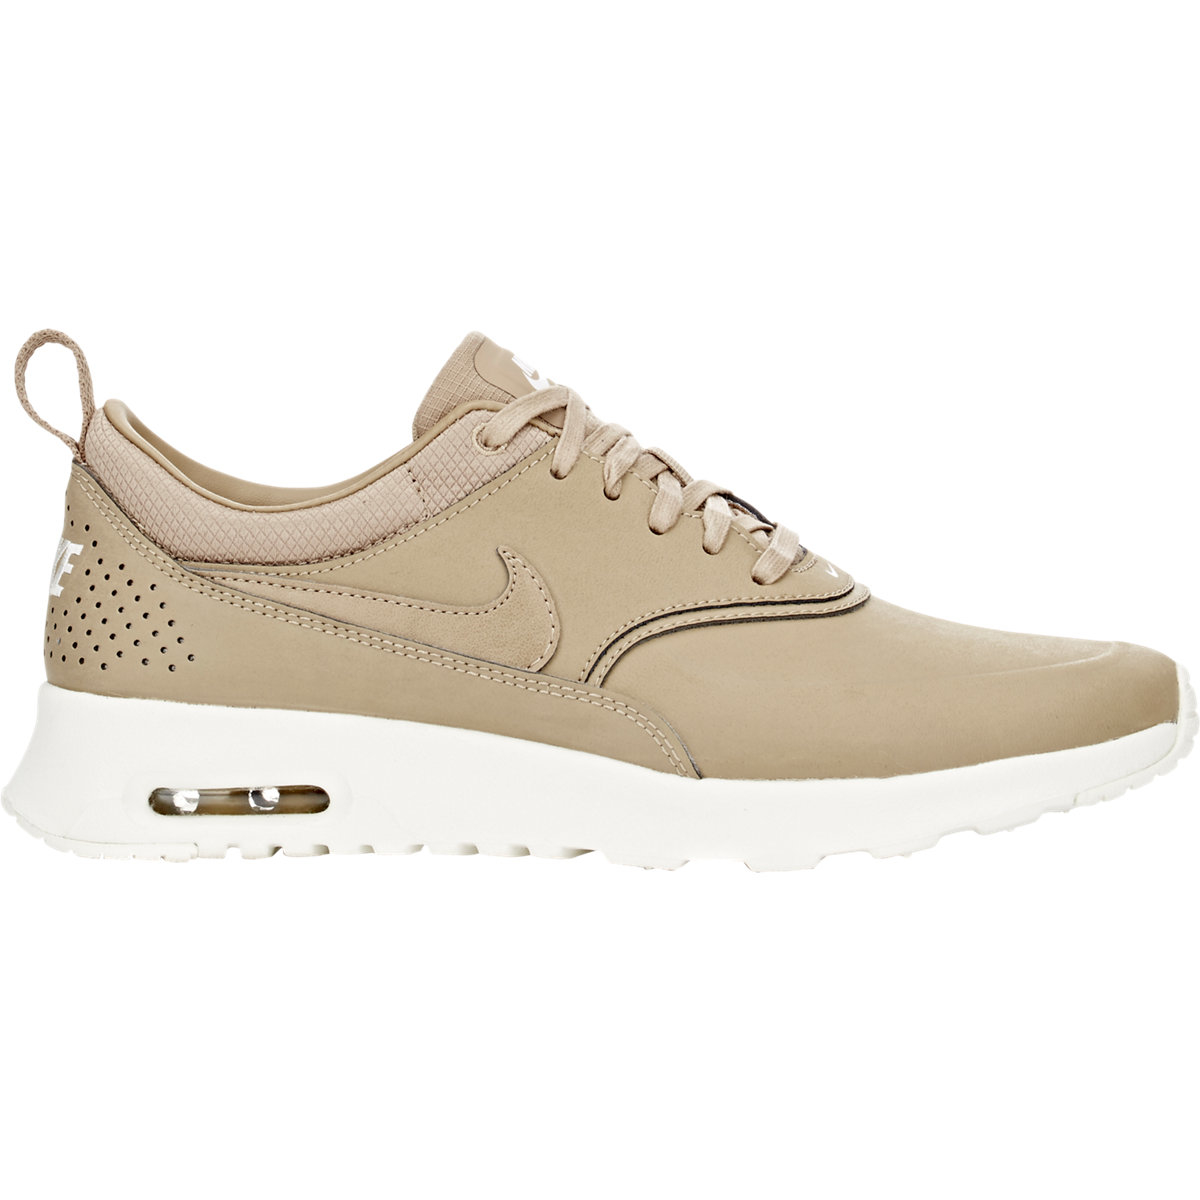 8e8578817f ... switzerland lyst nike air max thea premium sneakers in natural for men  942d4 938eb